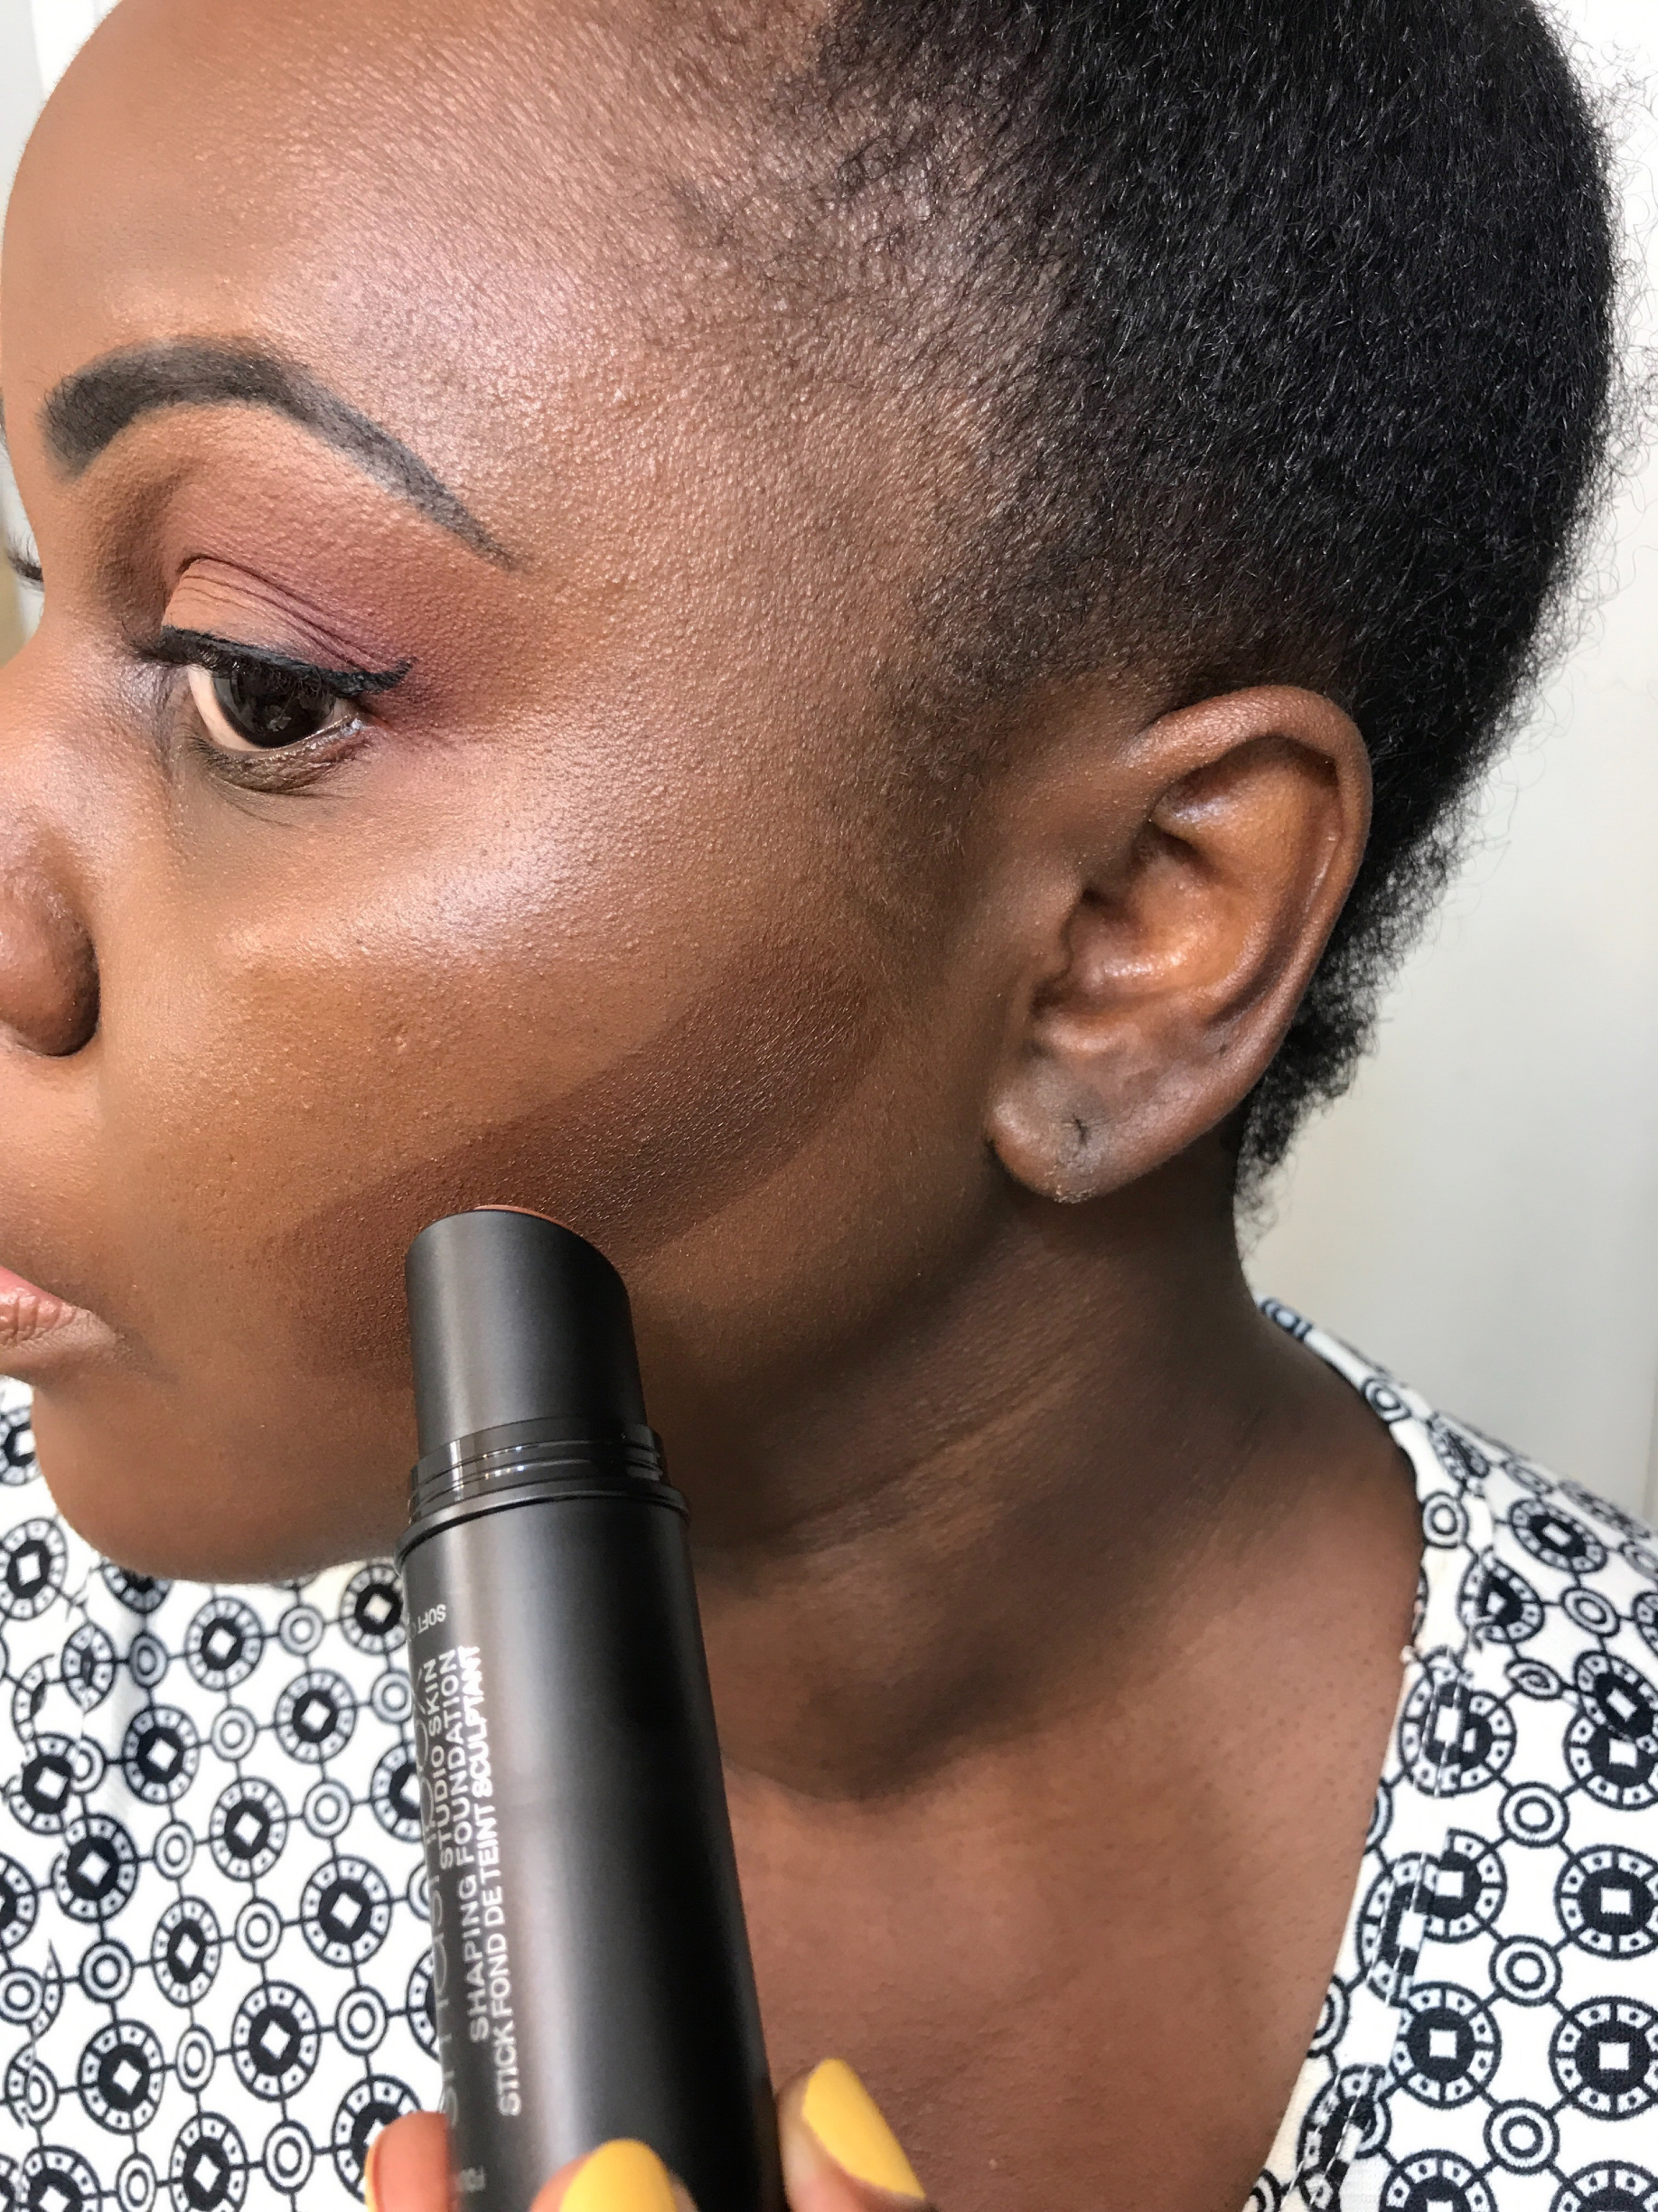 Smashbox Studio Skin Face Shaping Foundation Stick contouring dark skin